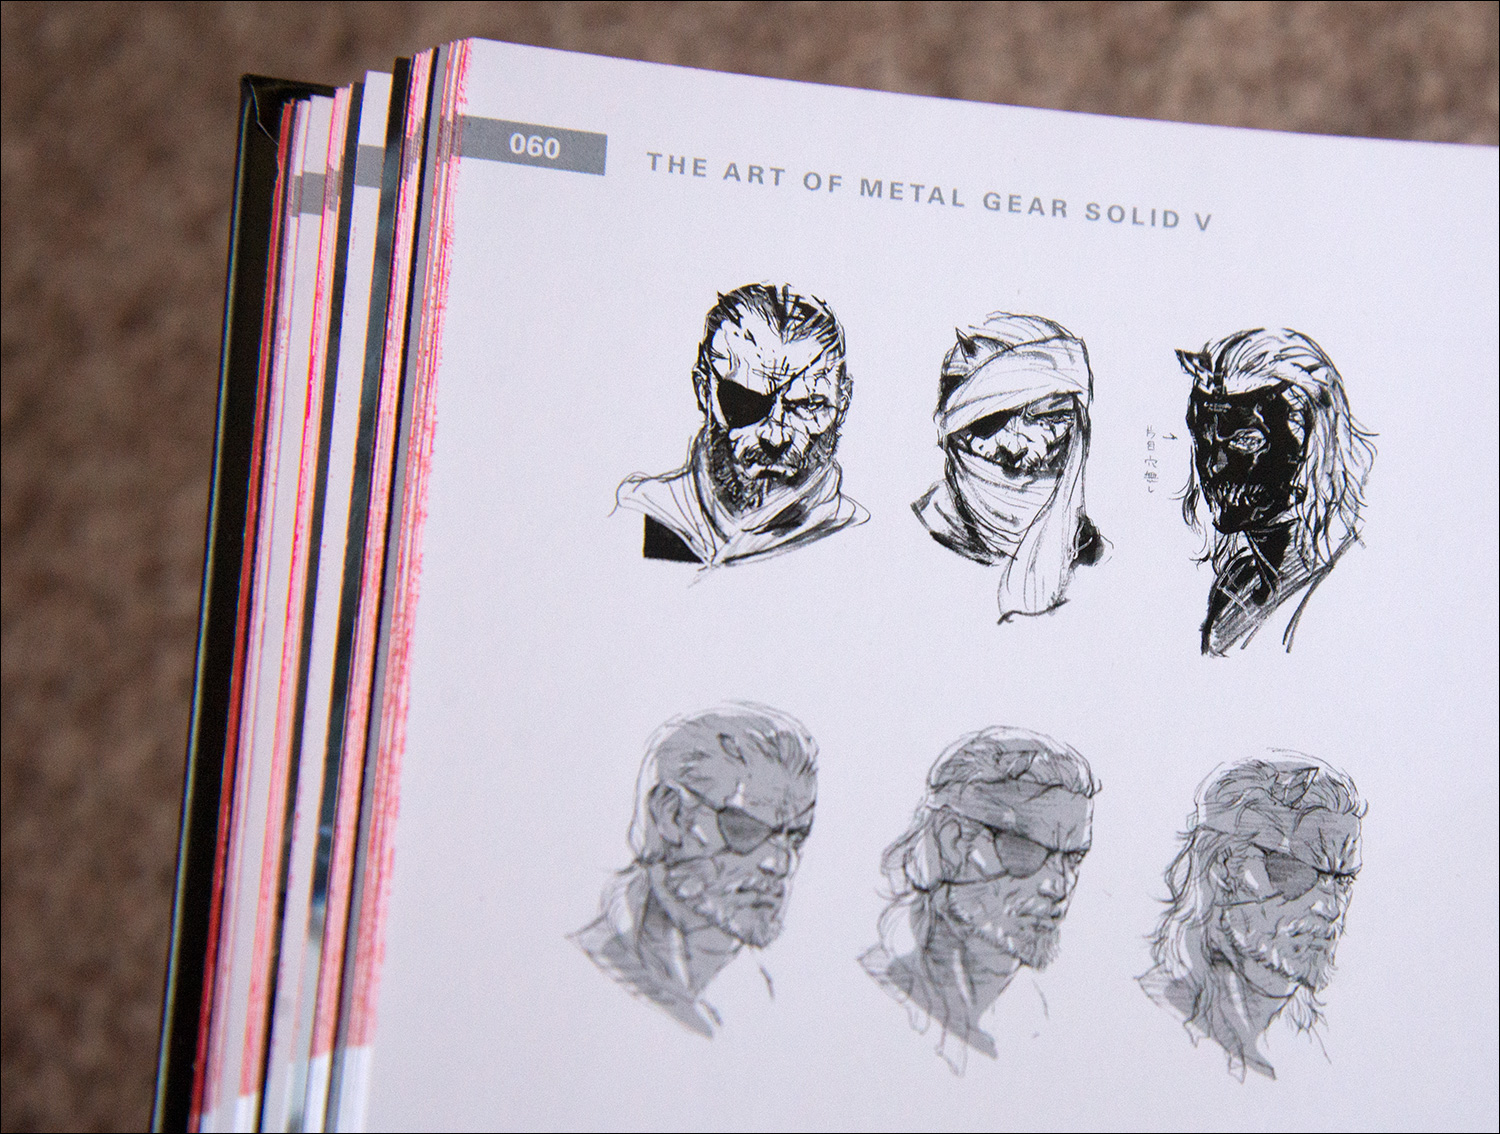 the-art-of-metal-gear-solid-v-limited-edition-snake-concept-arts